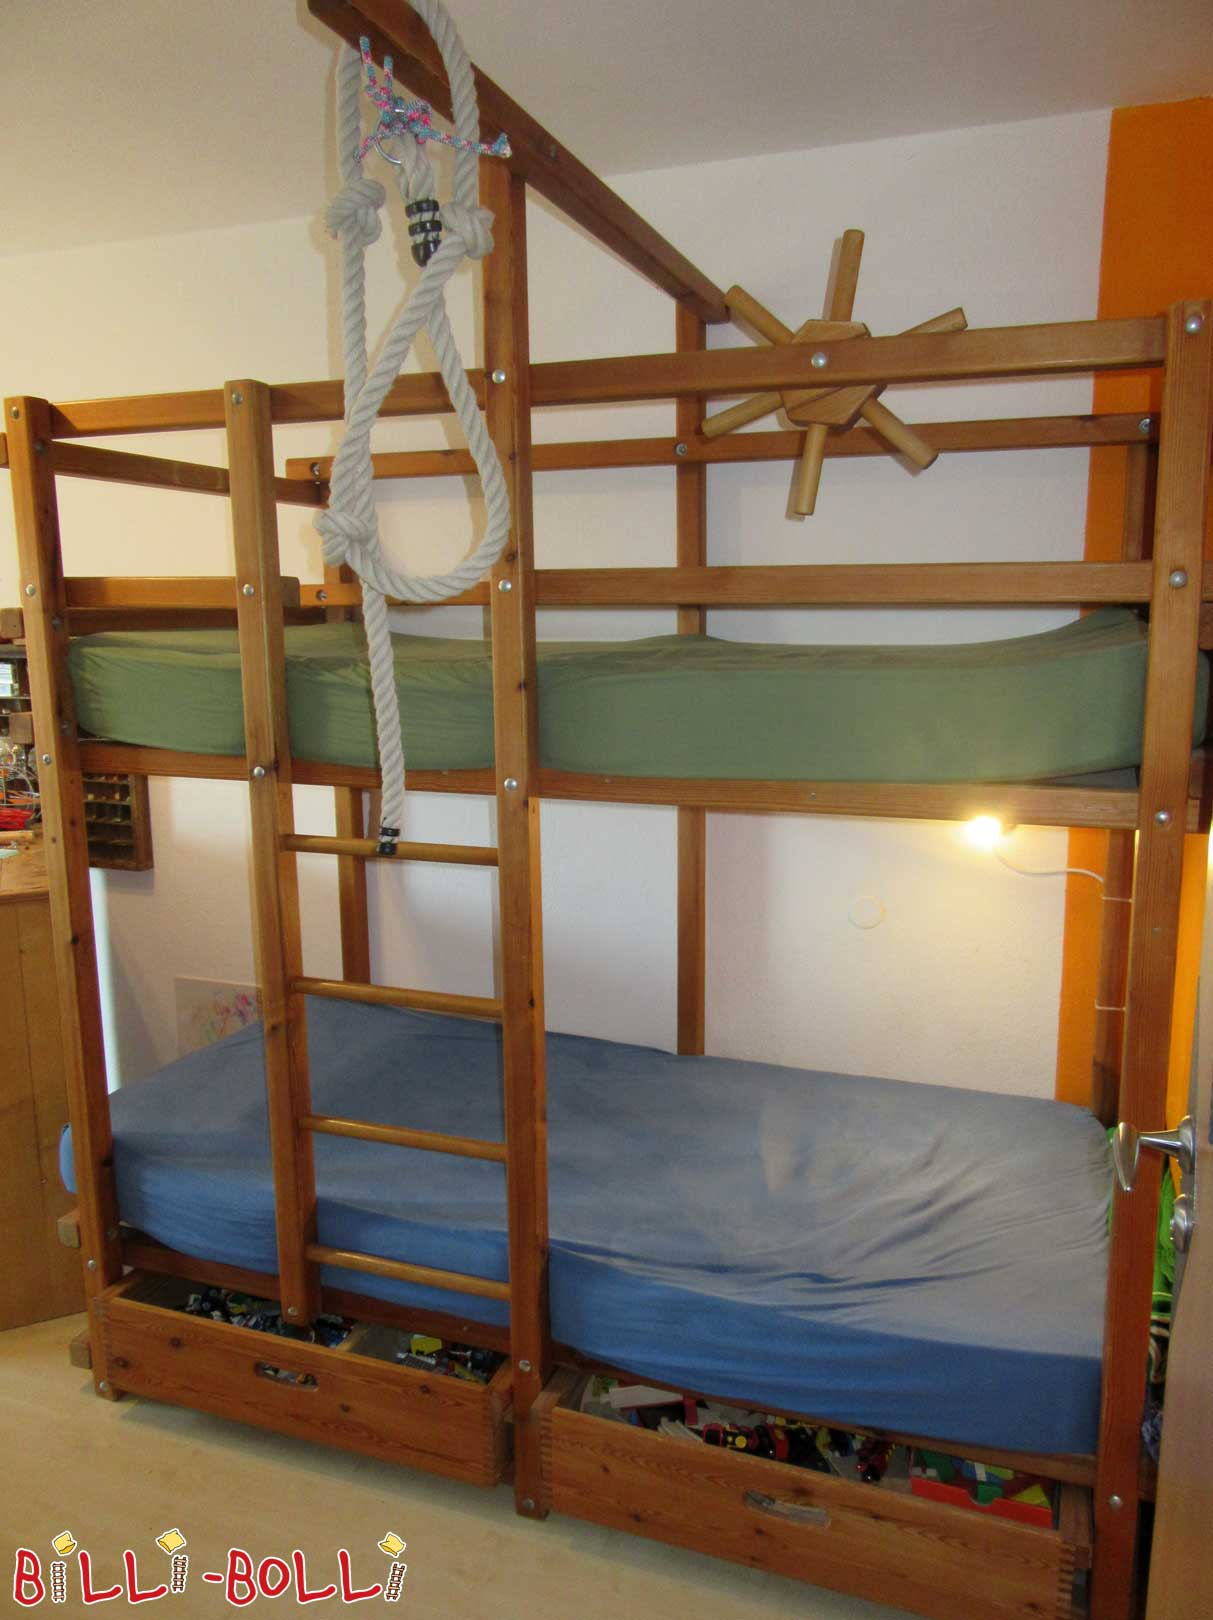 Gullibo bunk bed 90 x 200 cm, pine (second hand bunk bed)